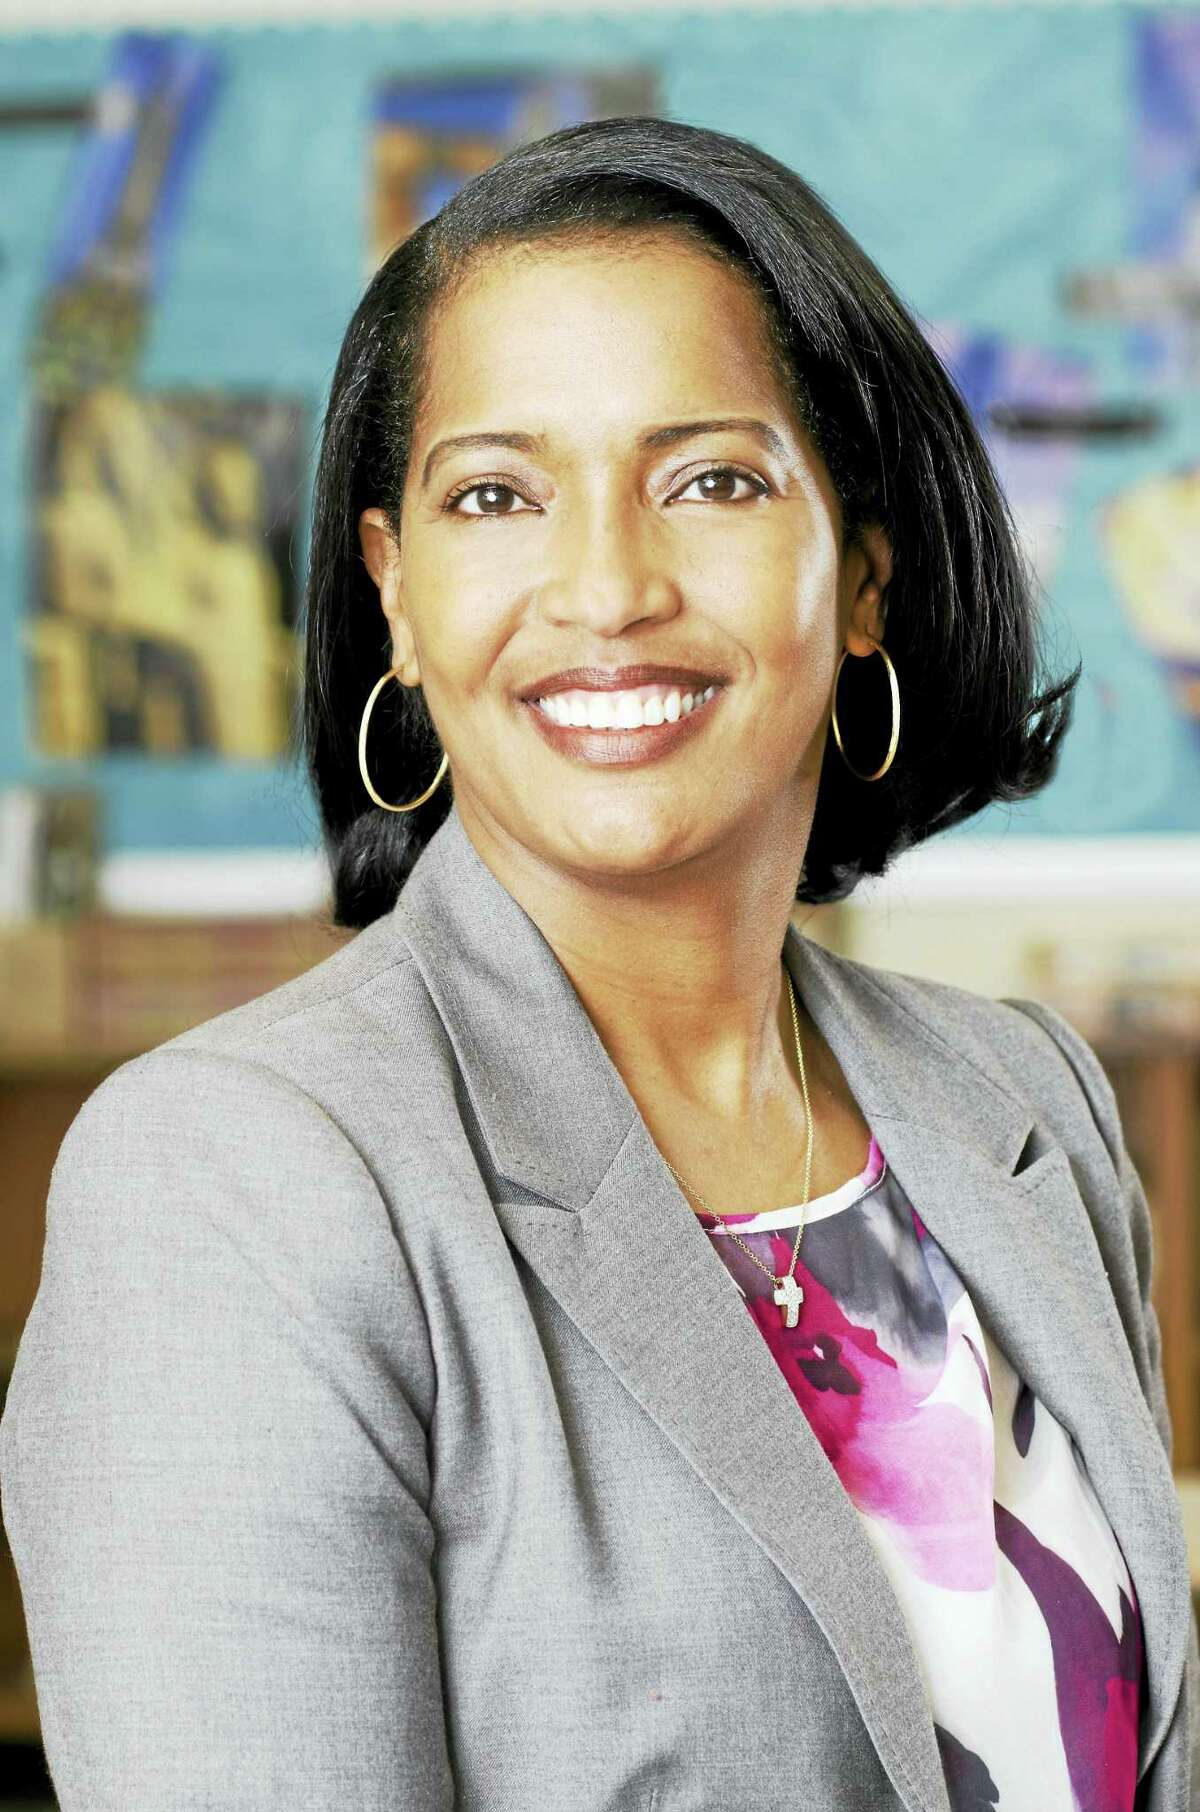 The Council of Chief State School Officers named Jahana Hayes as National Teacher of the Year on Thursday, April 28, 2016. Hayes teaches at John F. Kennedy High School in Waterbury and previously taught at James Hillhouse High School in New Haven. (Photo courtesy of Waterbury Public Schools)